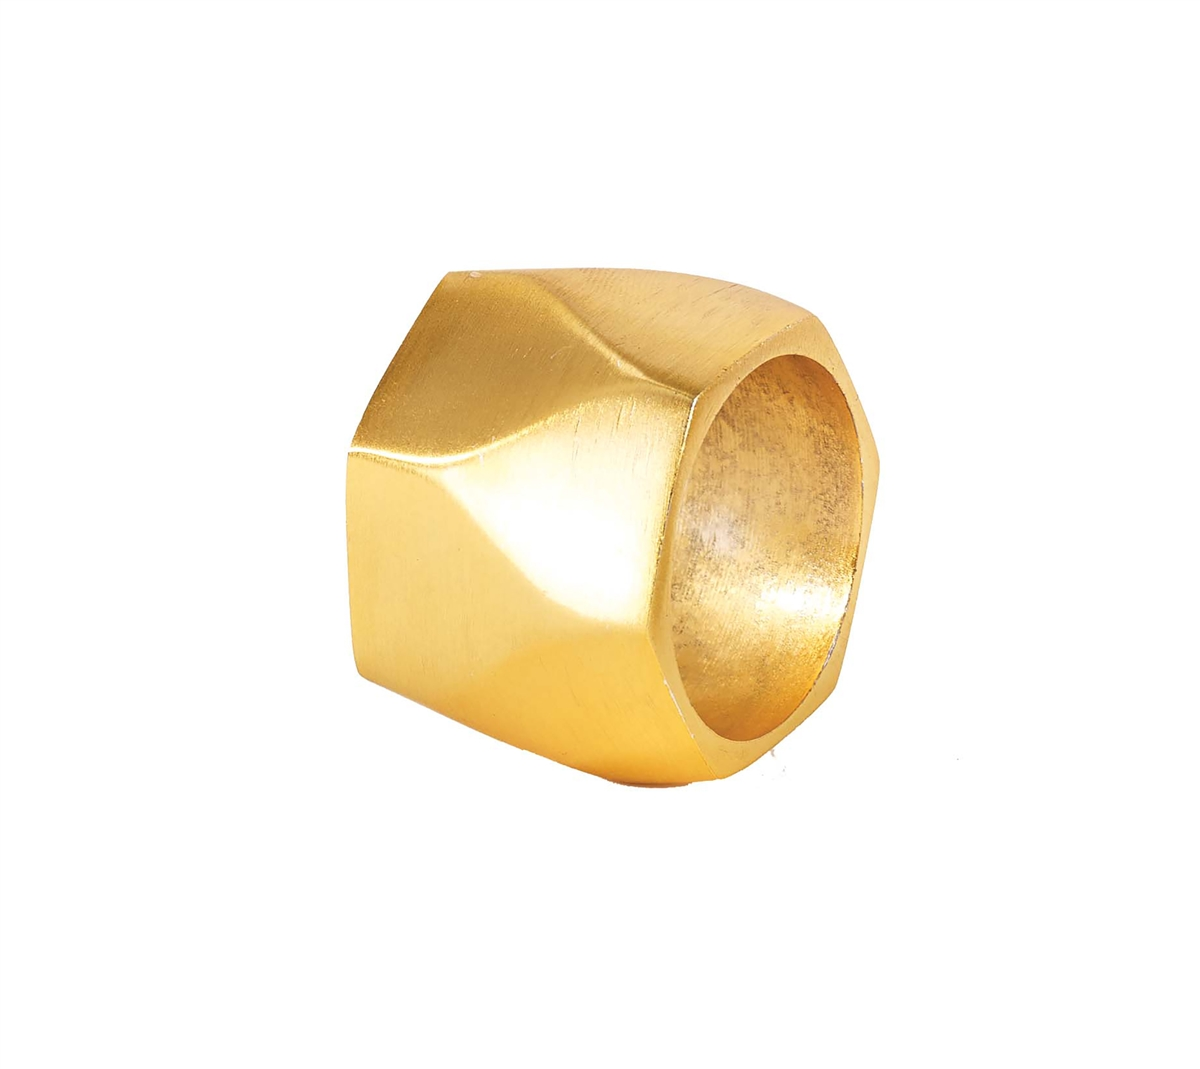 Bodrum Arch Gold Napkin Rings (Set of 4)